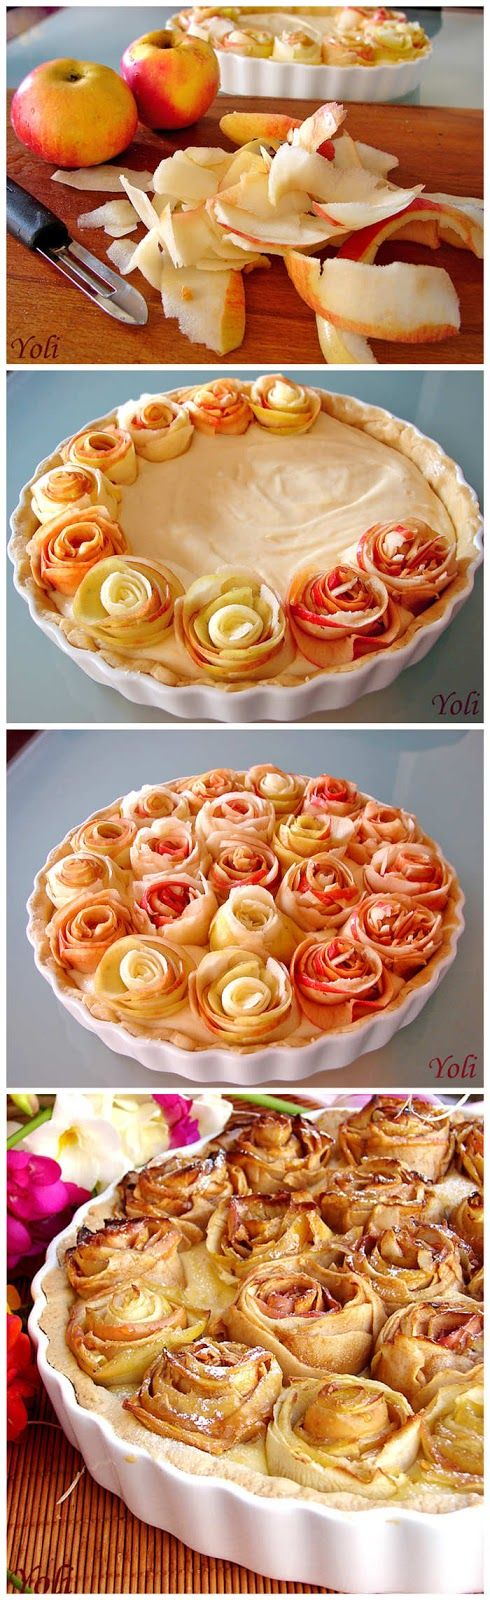 Apple pie with roses. this is awesome.